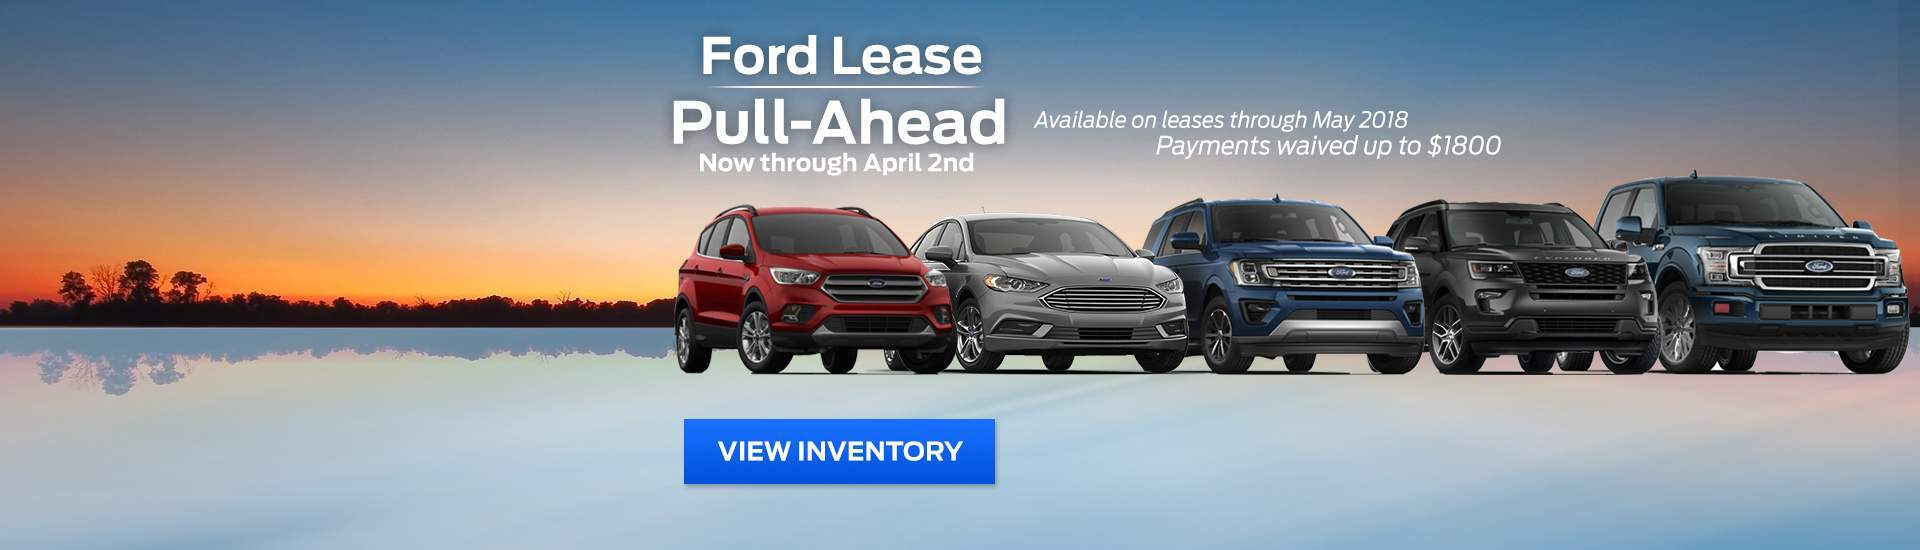 Ford Pull Ahead